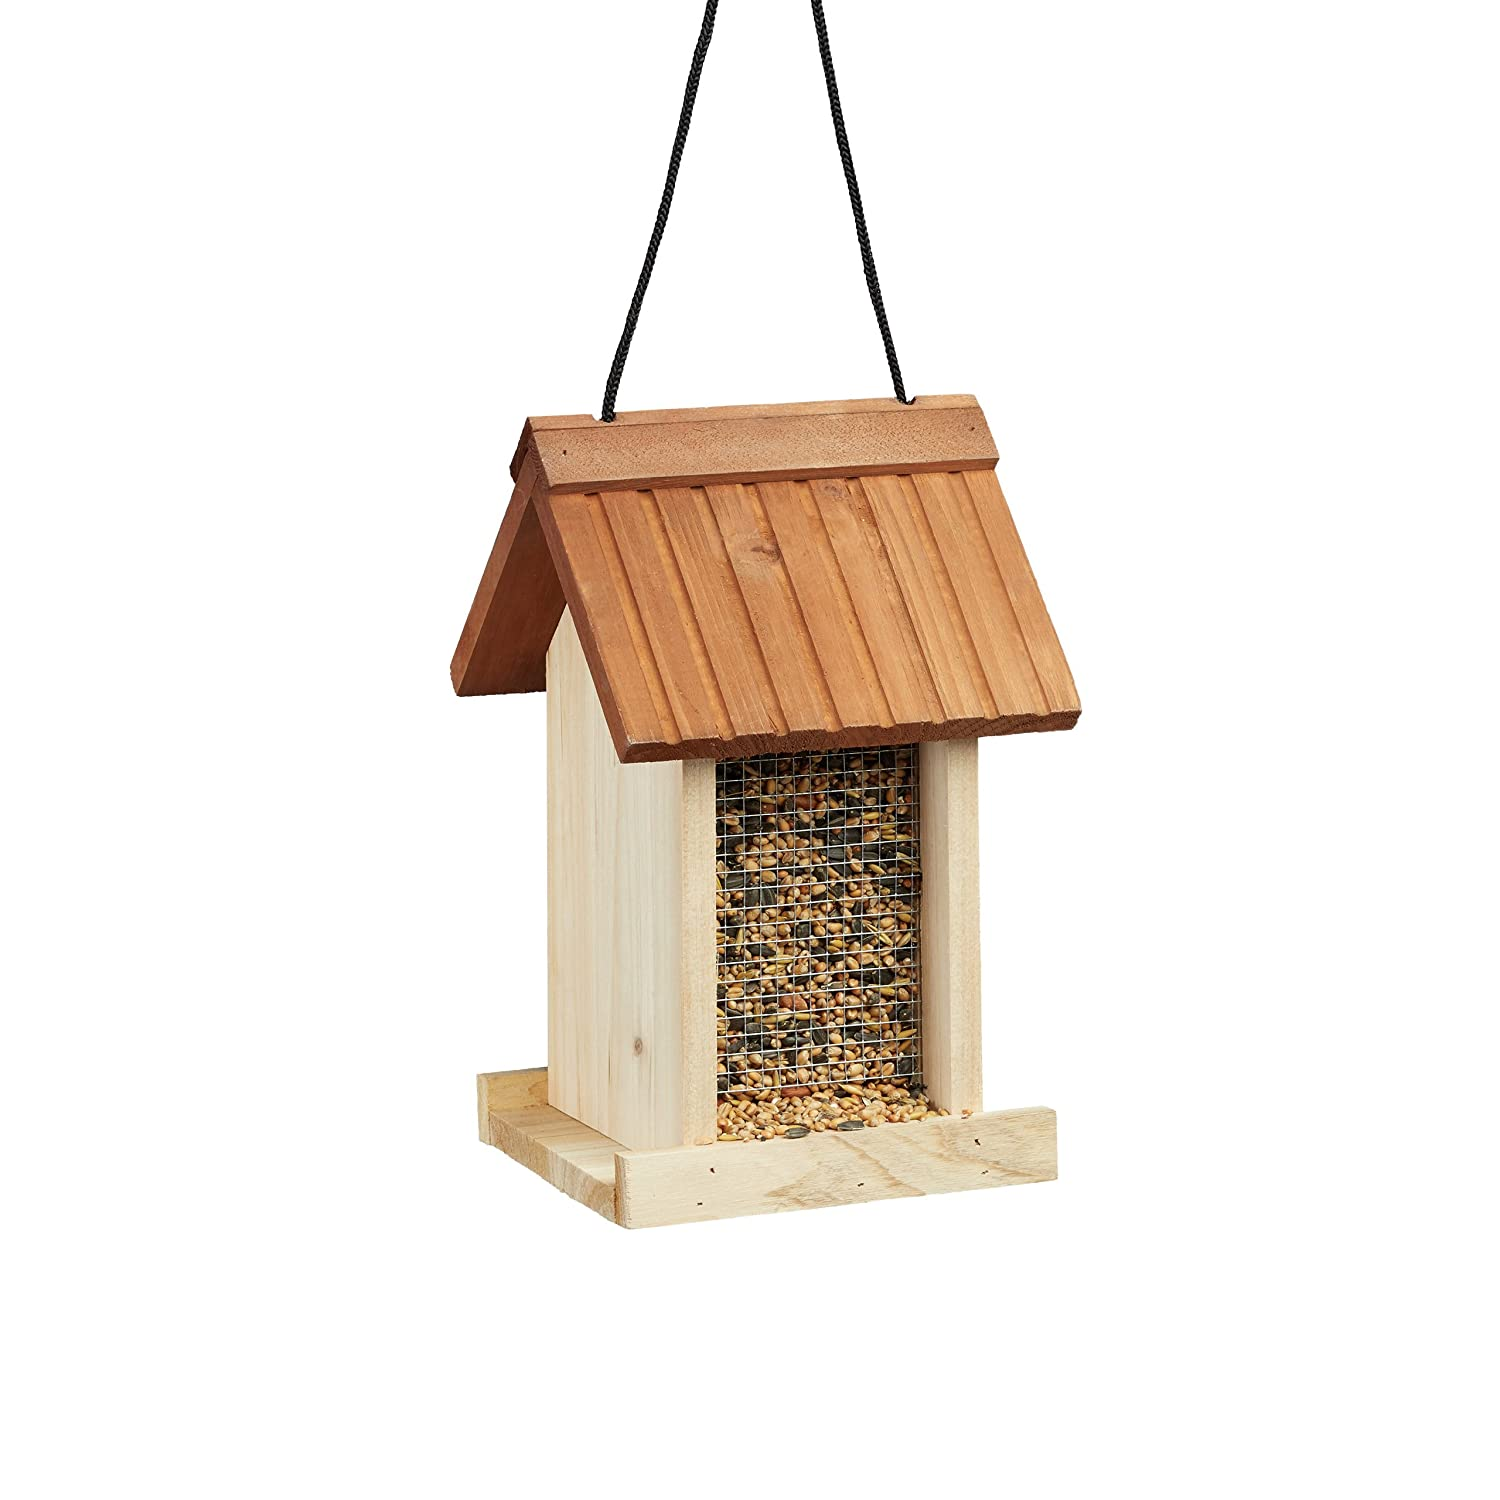 Relaxdays Wooden Birdhouse, Untreated, Hanging, No Stand, HxWxD: ca 27 x 17 x 18 cm, Brown